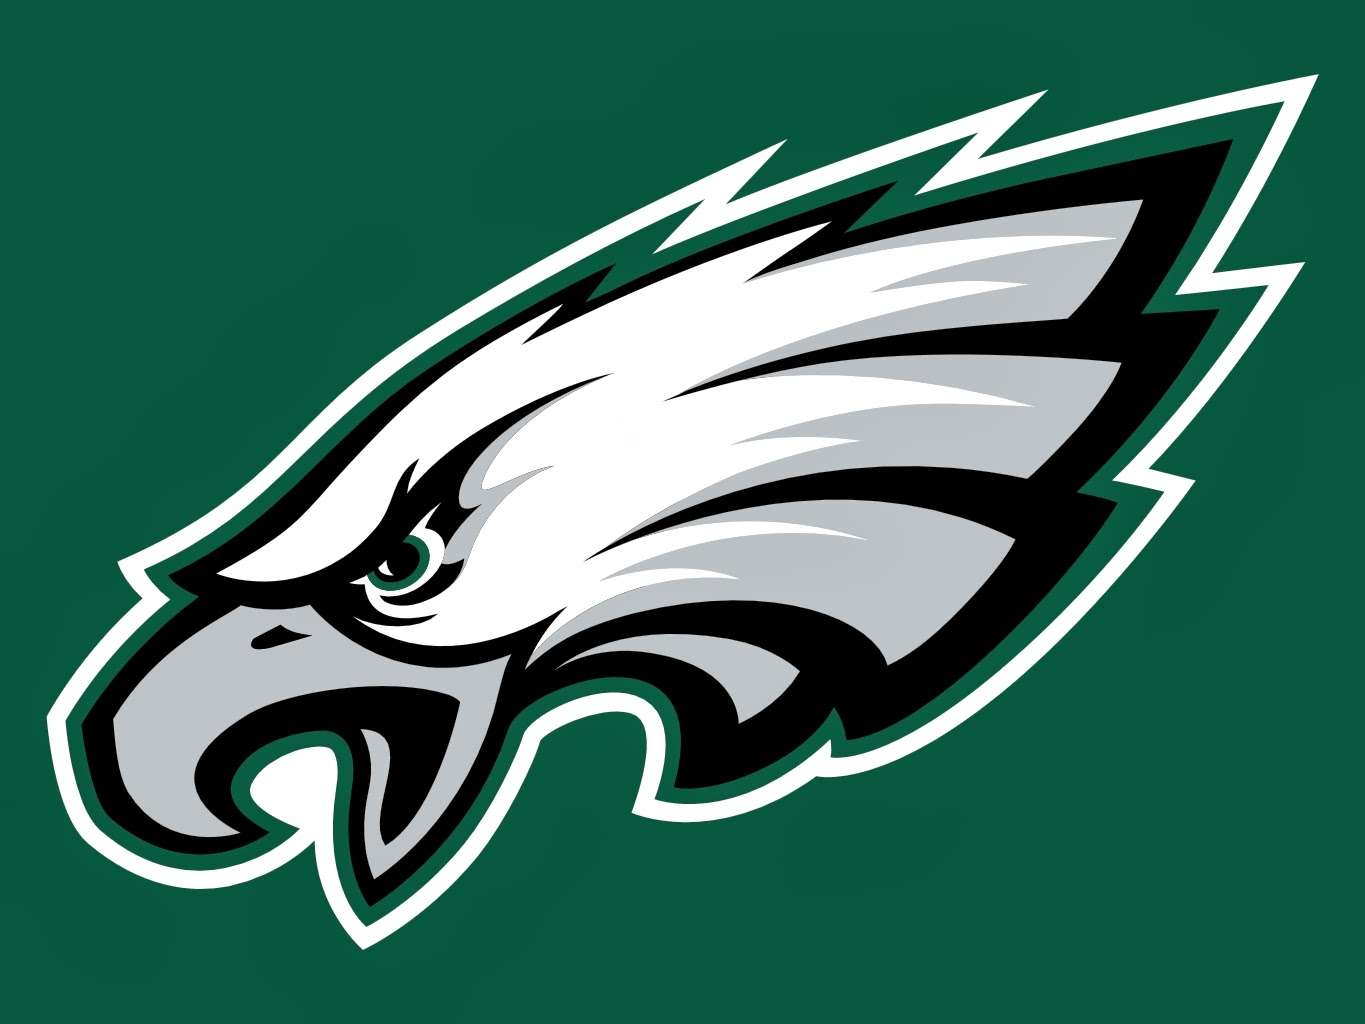 12 Best Logos of the NFL Superbowl